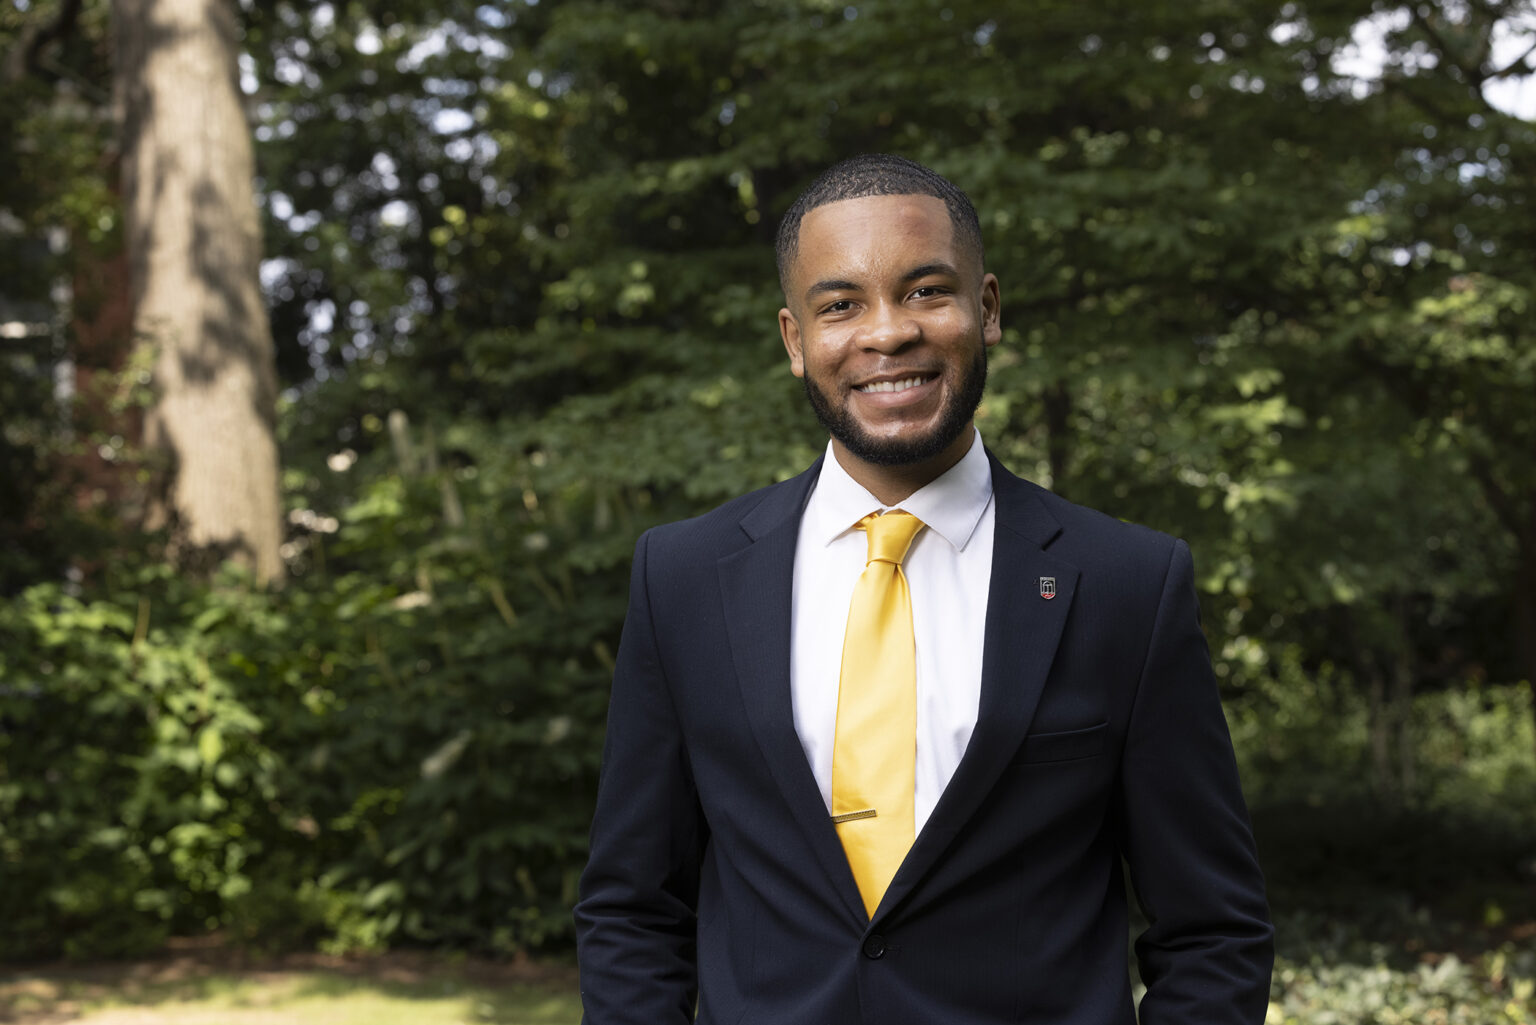 Eric Okanume aims to give a voice to others. A future physician, he takes on leadership roles to advocate for mutual empowerment and ensure college readiness among underrepresented communities.